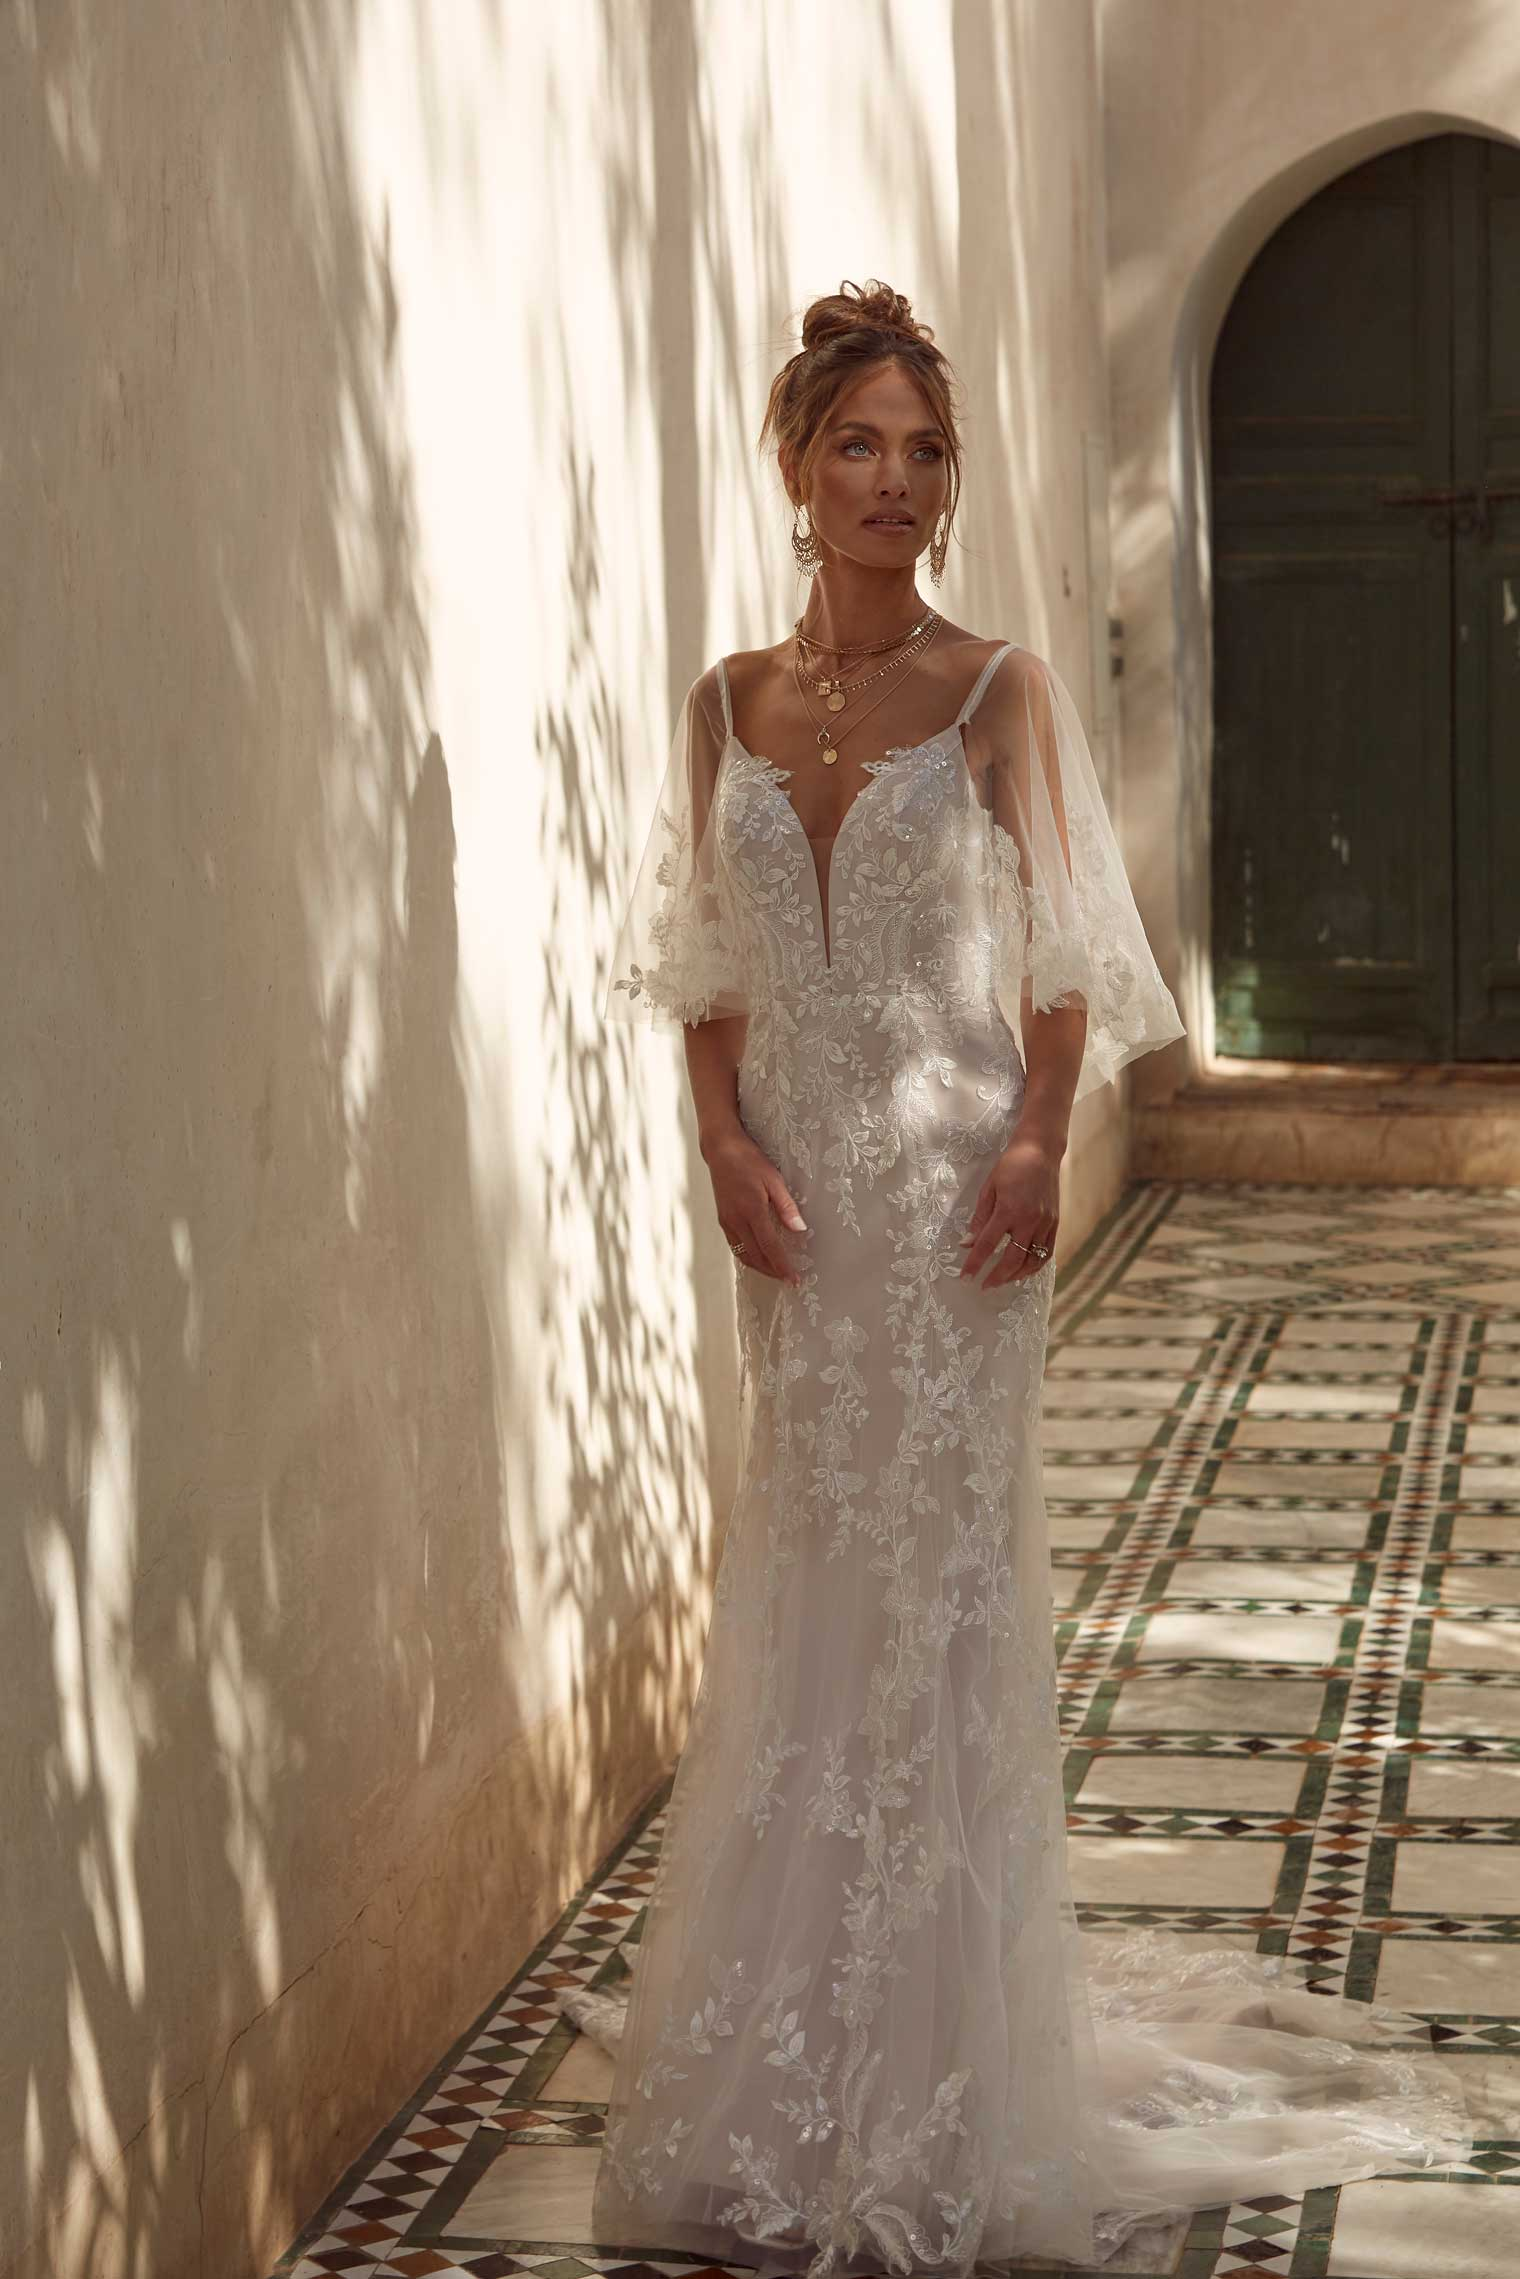 AVA-ML17121-FULL-LENGTH-FITTED-LACE-GOWN-WITH-PLUNGING-NECK-AND-LOW-BACK-WITH-DETACHABLE-CAPE-AND-BELT-WEDDING-DRESS-MADI-LANE-BRIDAL5